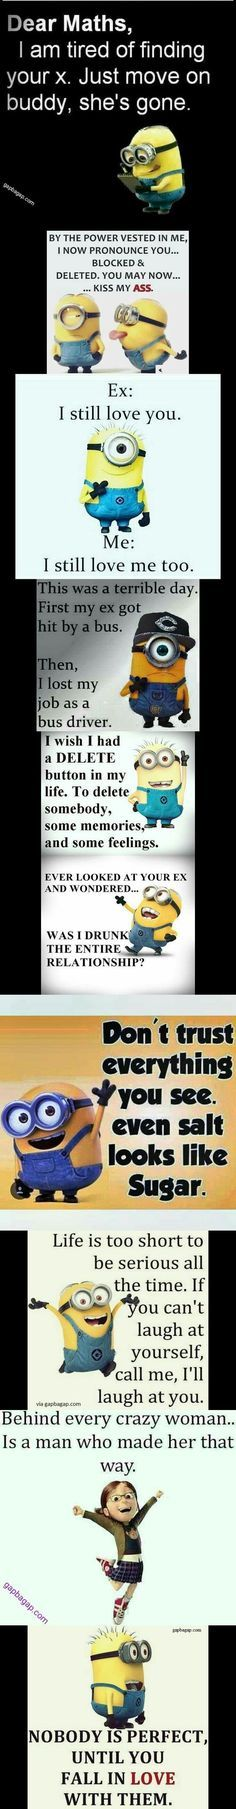 Top 10 Funniest Jokes About Exes By The Minions